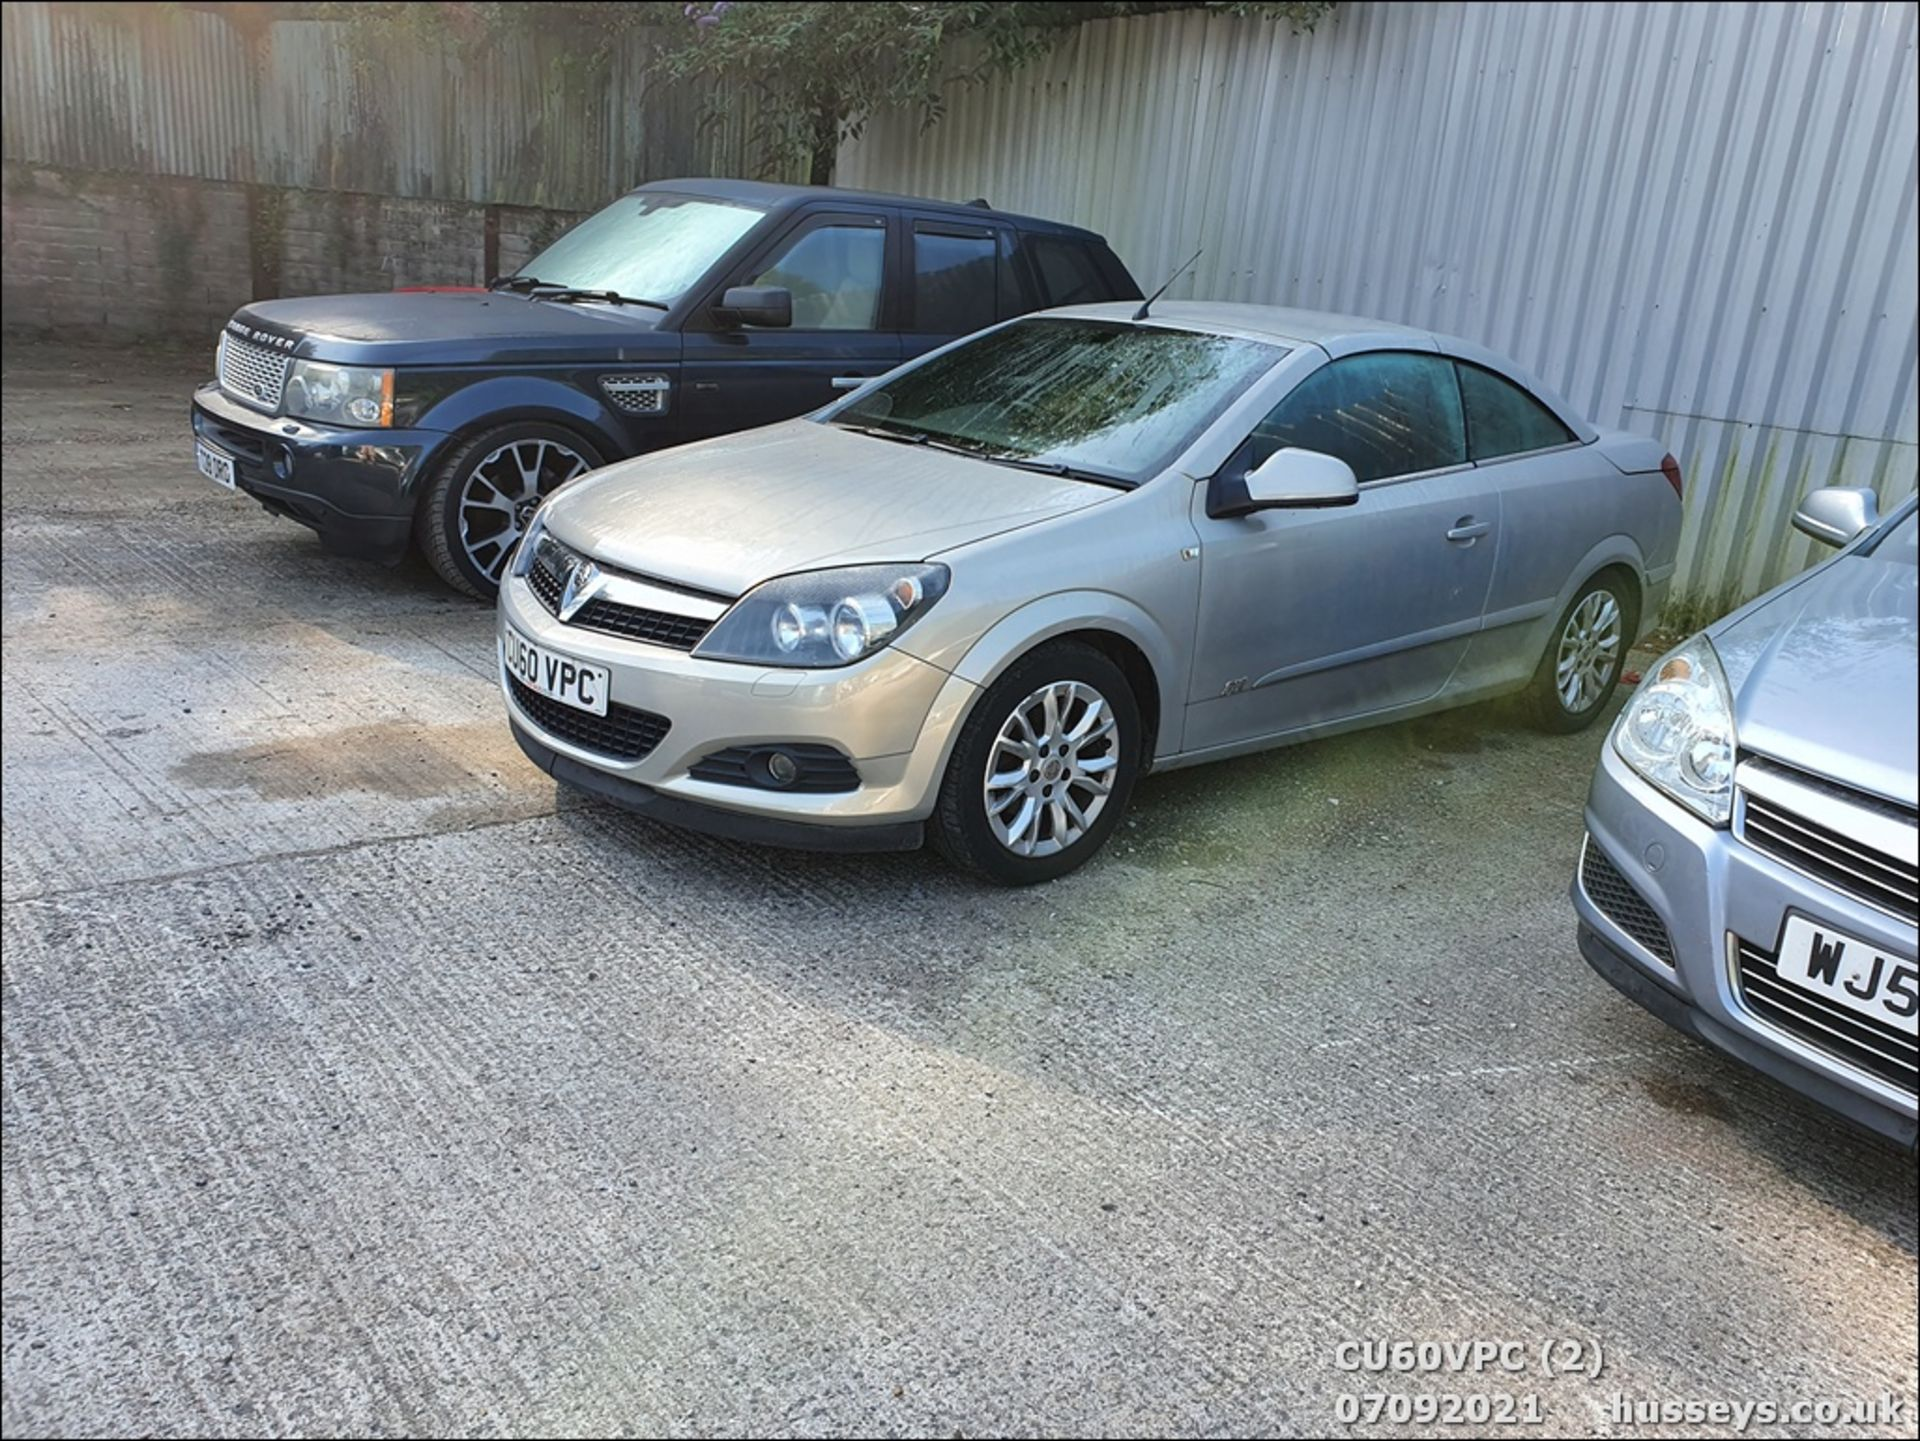 11/60 VAUXHALL ASTRA SPORT - 1796cc 2dr Convertible (Silver, 123k) - Image 2 of 12